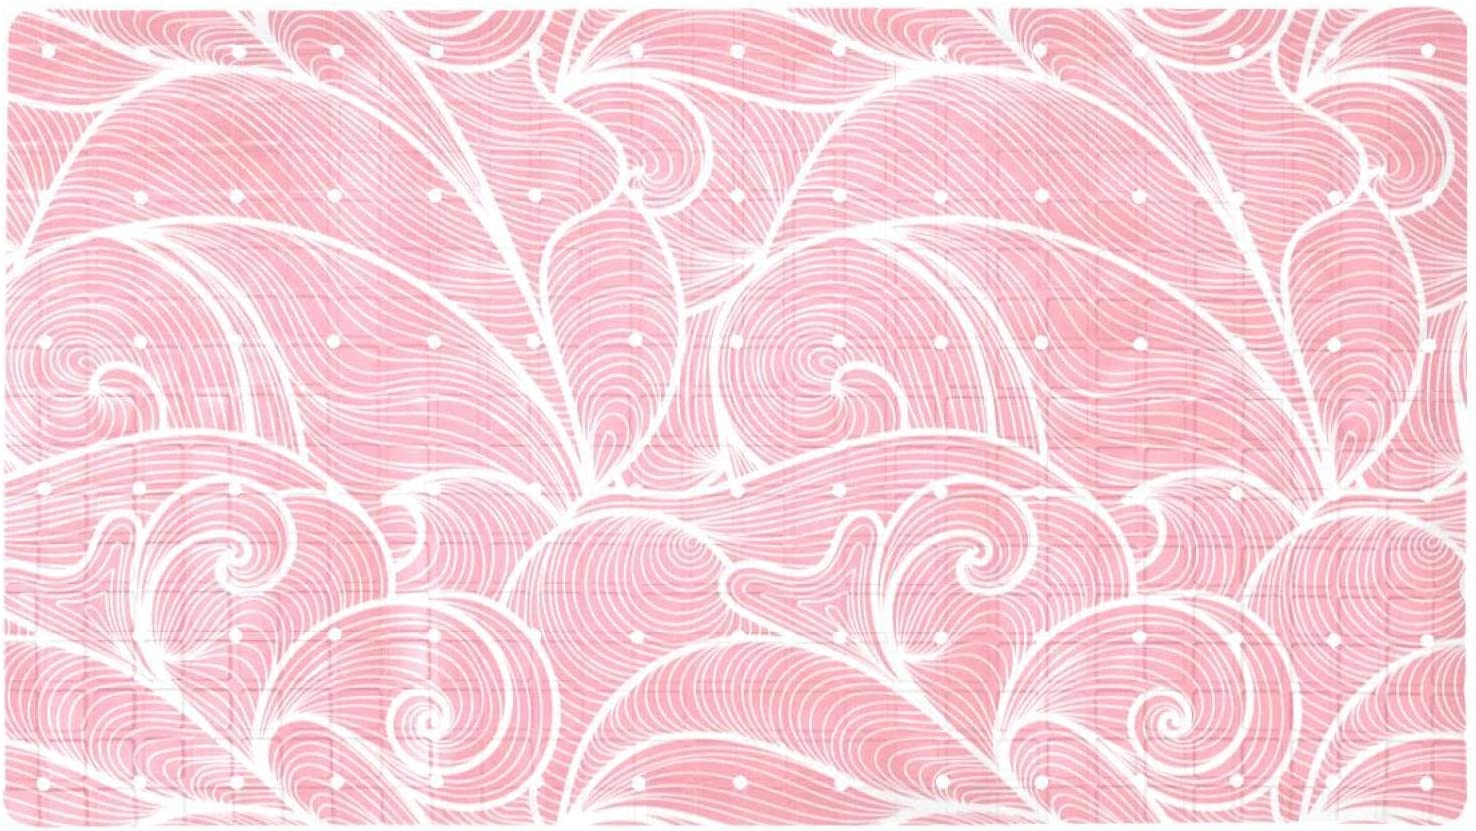 Bath Tub Shower Mat Year-end annual account 15.7x27.9 Wa Waves inches Hand-Drawn Fixed price for sale Pattern